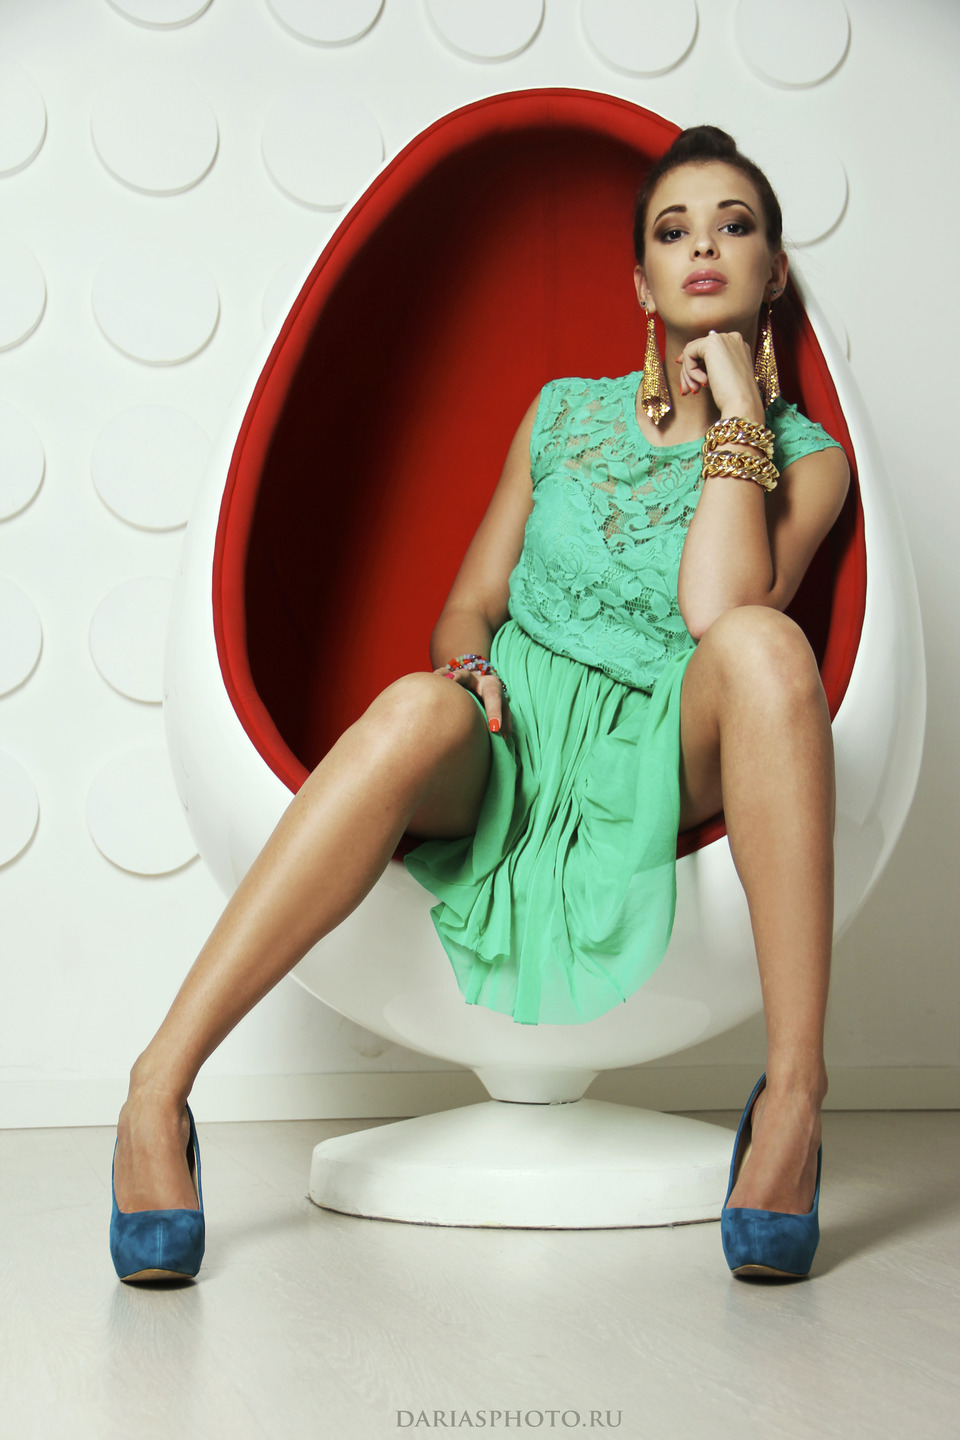 Sexy girl sitting in an egglike armchair | armchair, sexy girl, photo shoot